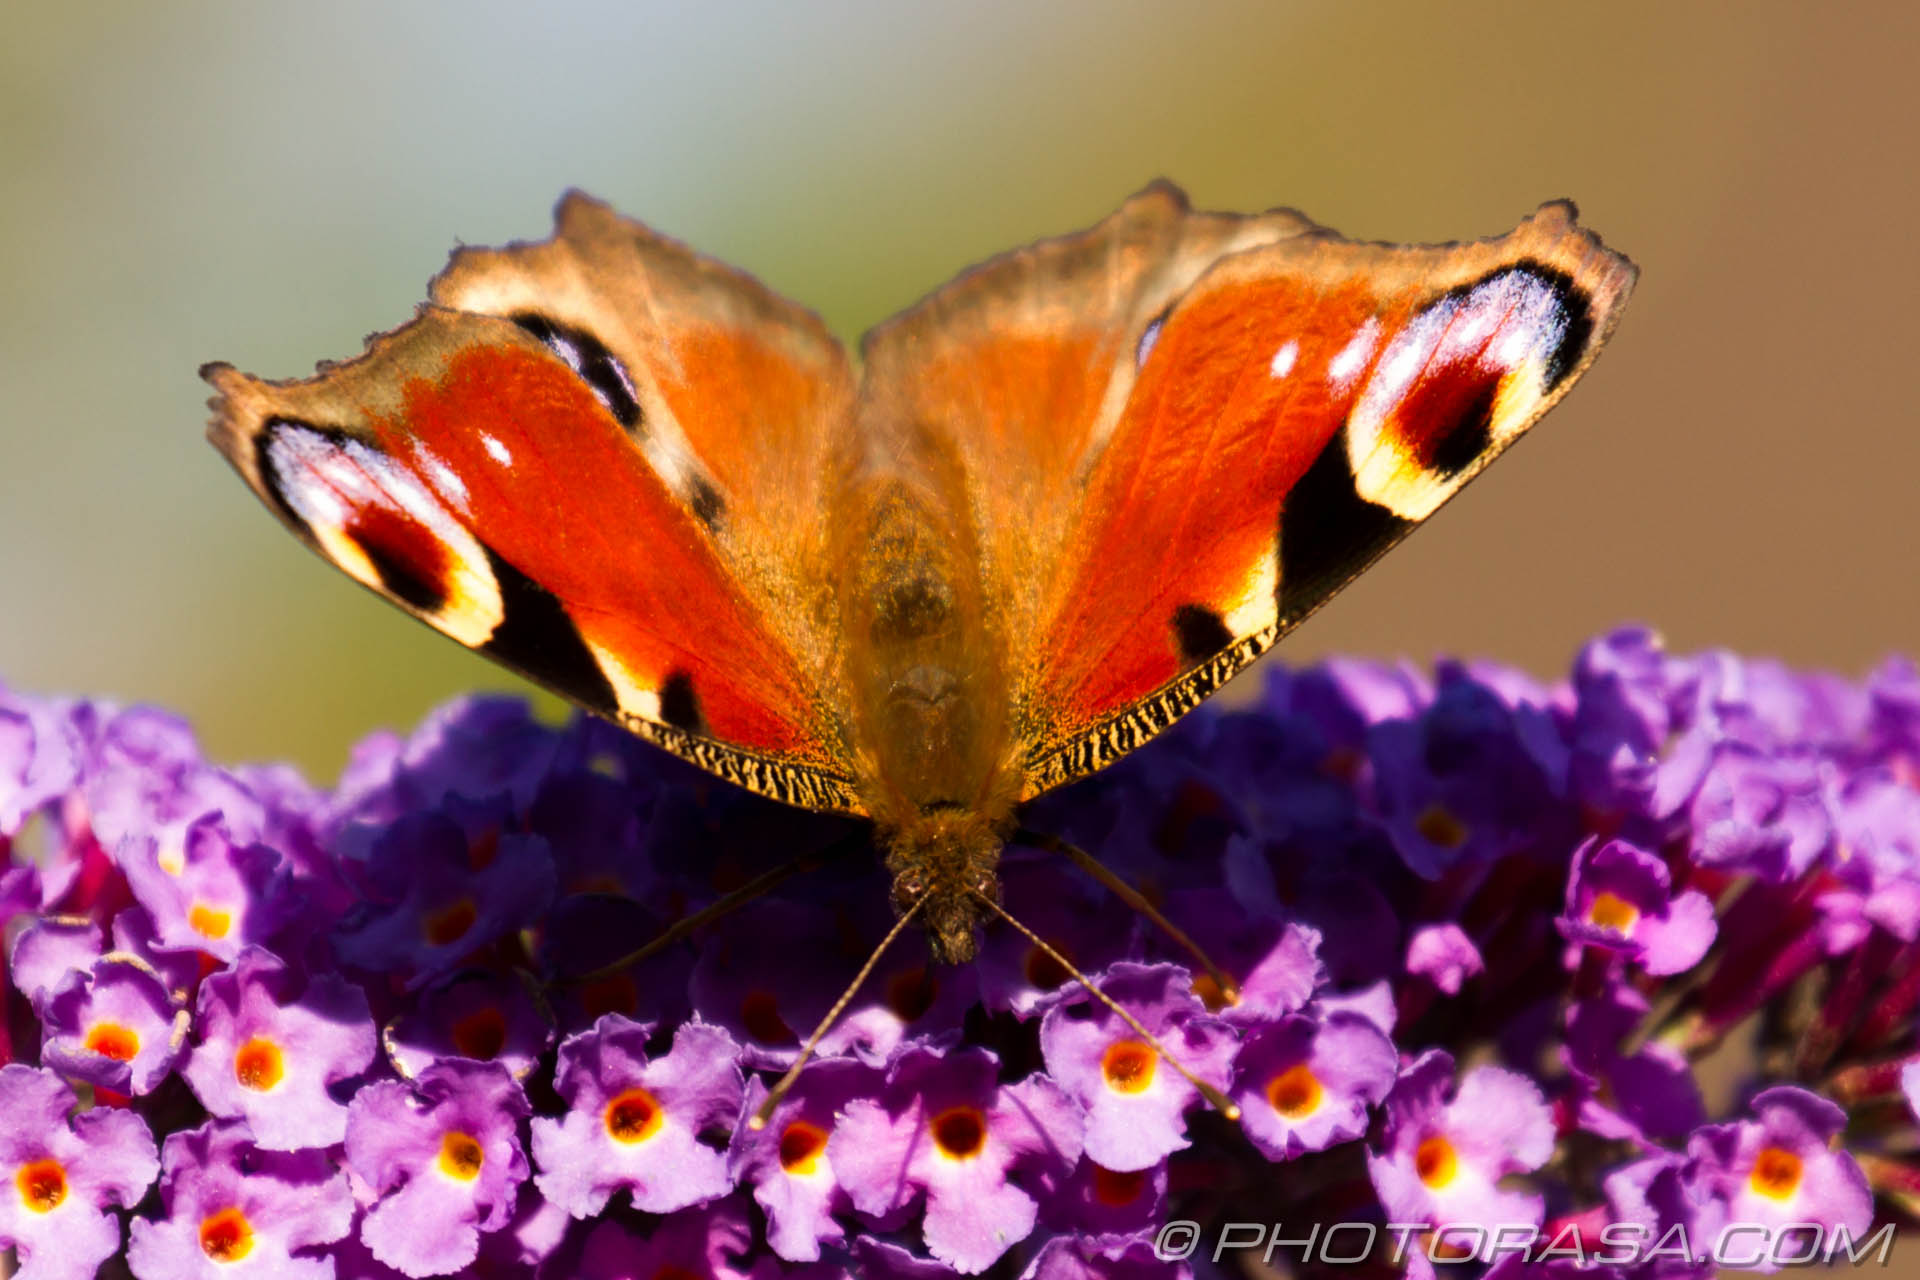 https://photorasa.com/peacock-butterfly/frontal-with-the-flowers/